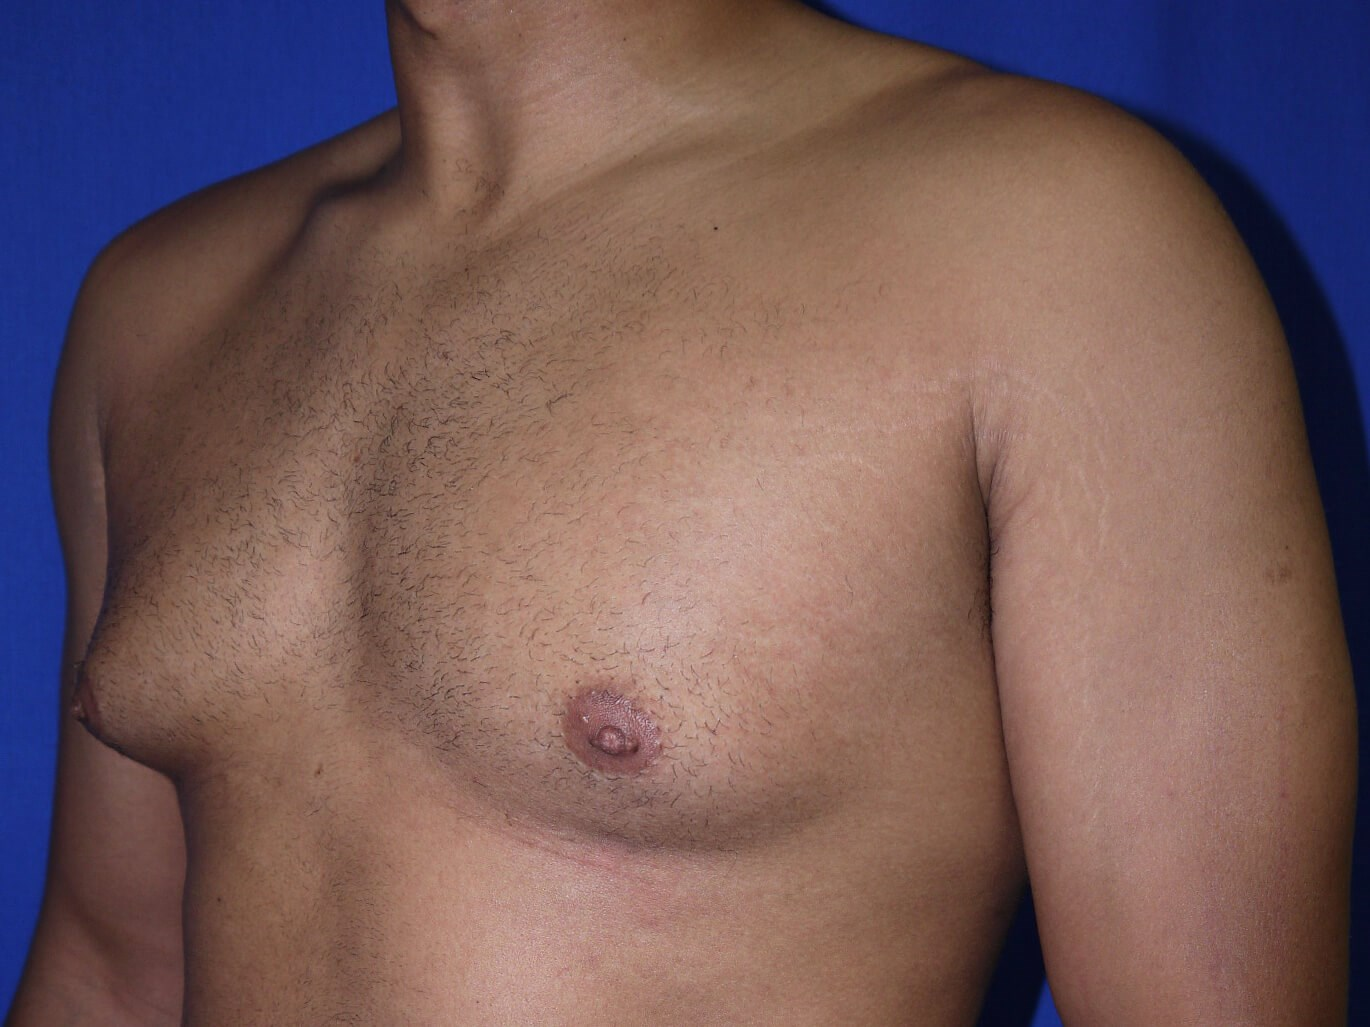 gynecomastia before - Left Oblique View